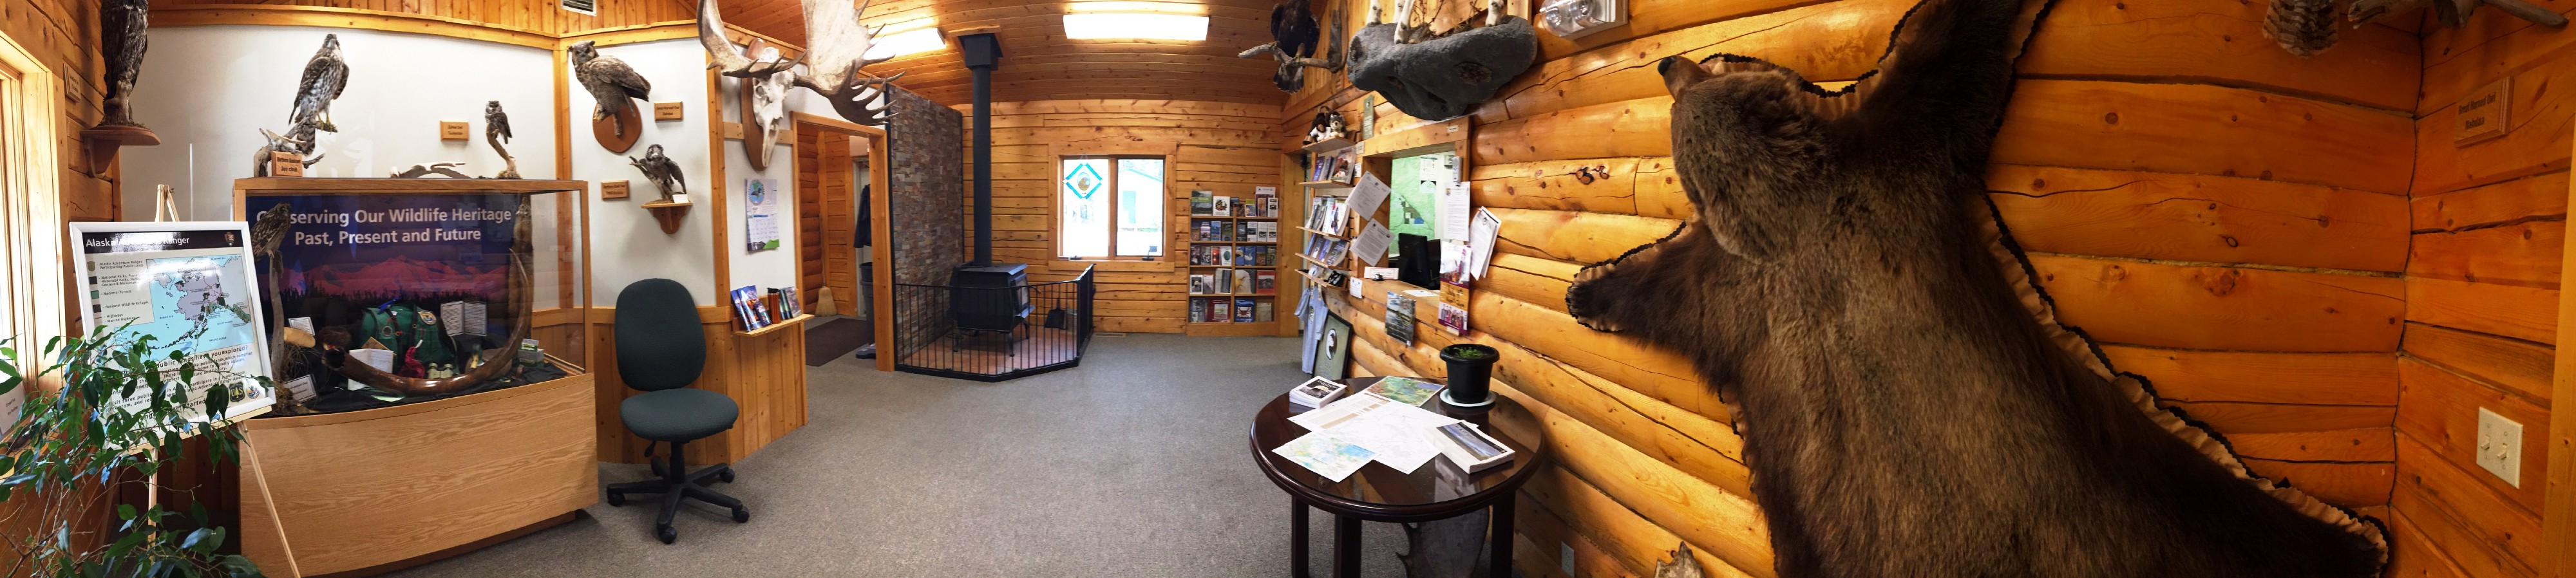 Panorama of the inside of the Tetlin National Wildlife Refuge Visitor Center.